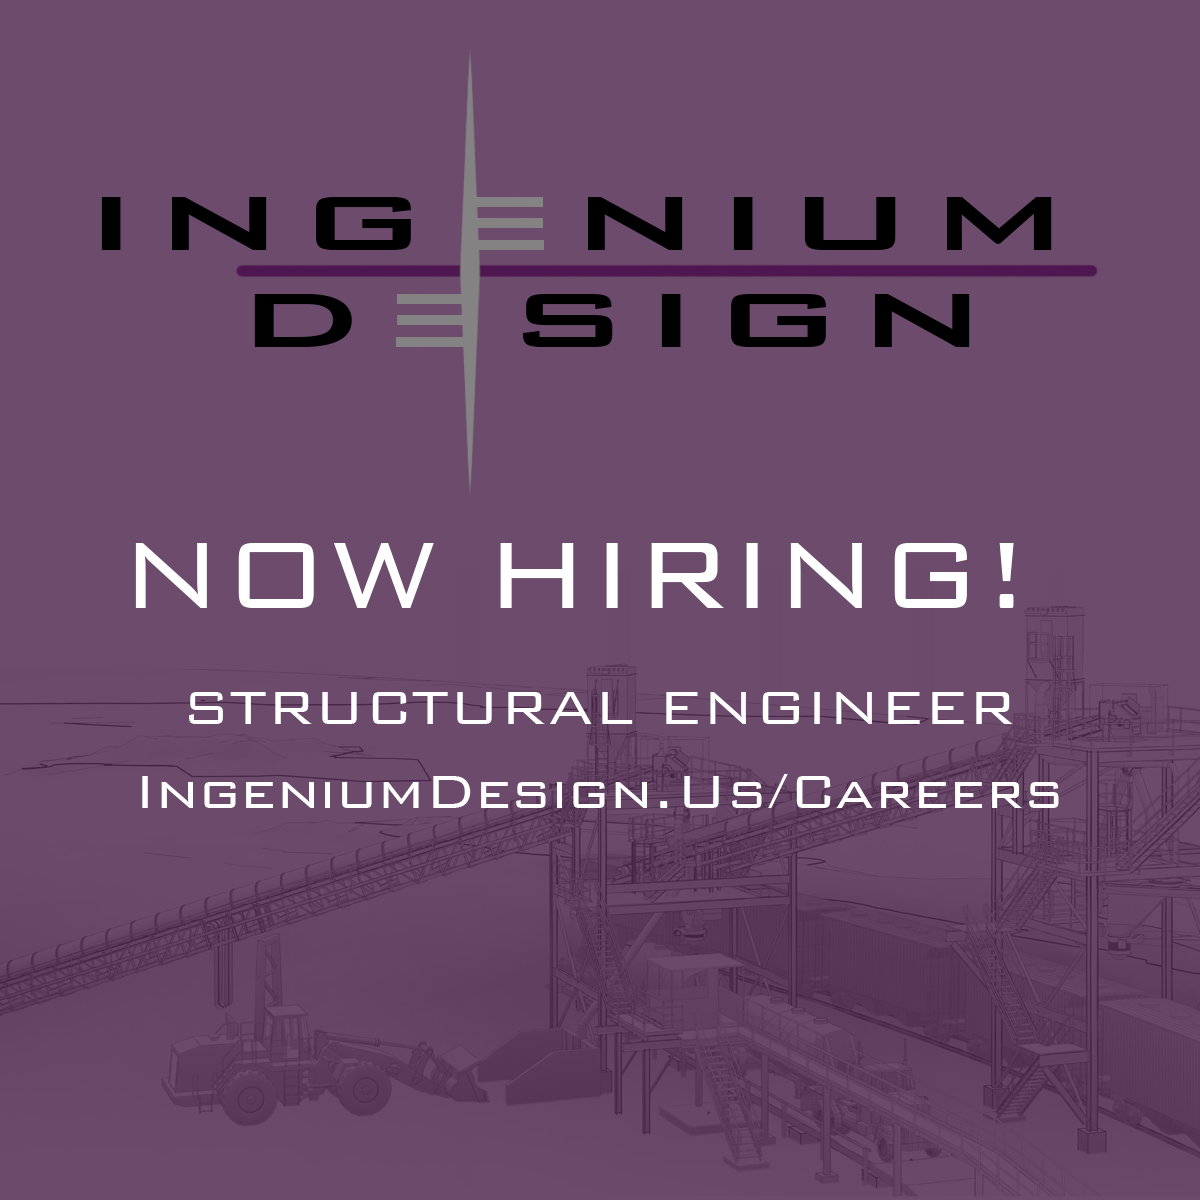 Now Hiring Structural Engineer